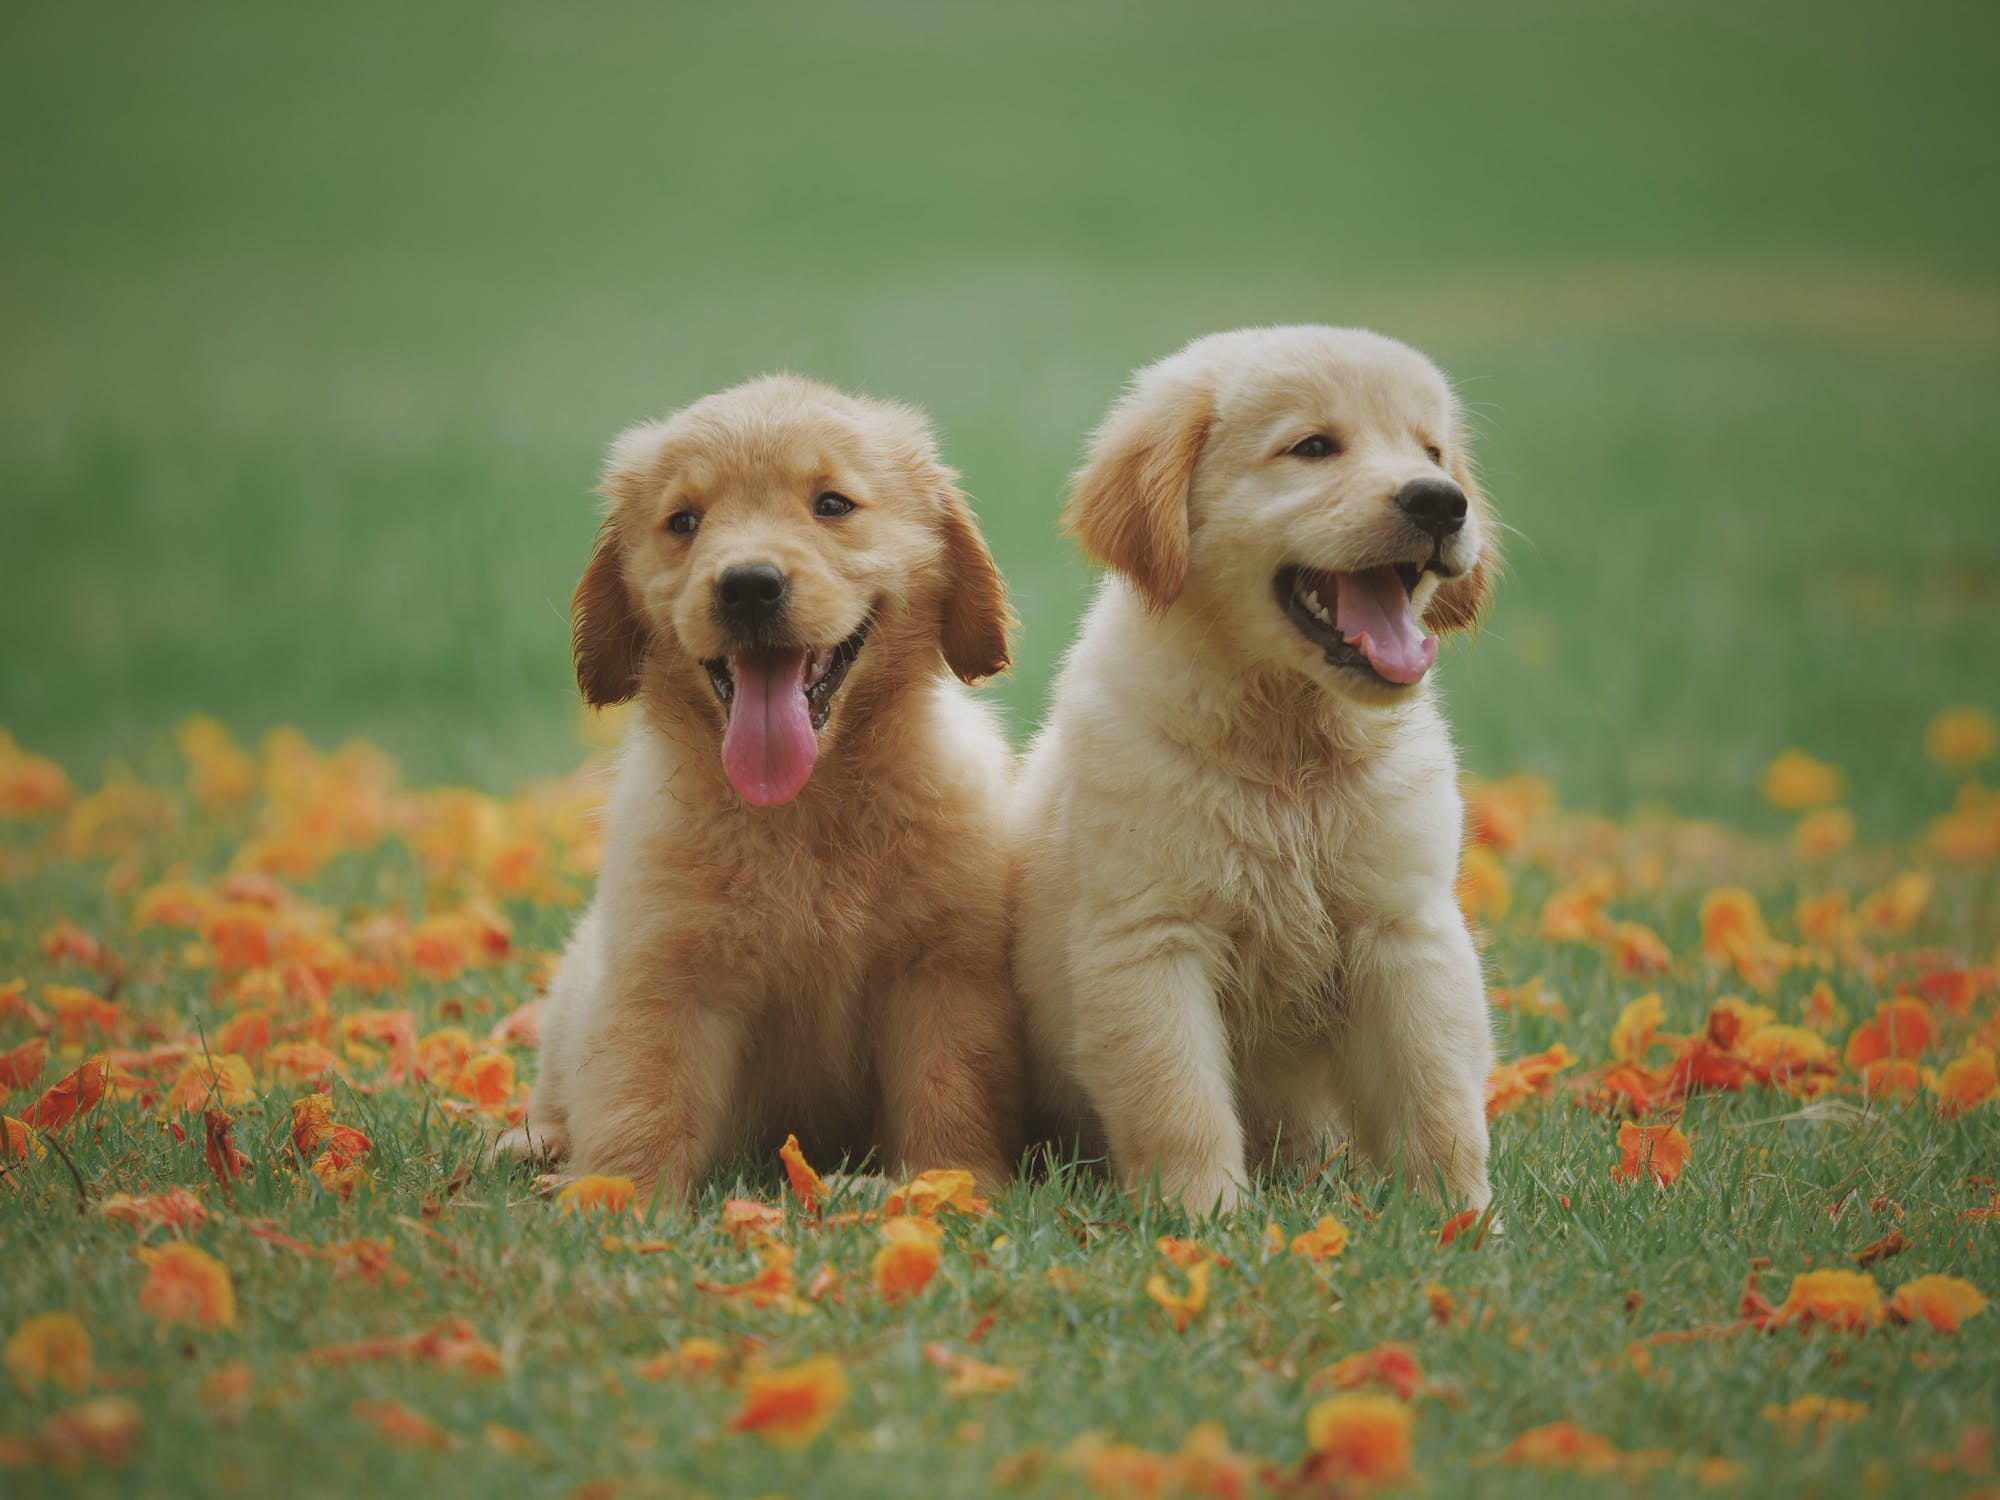 The Science Behind Puppy Love